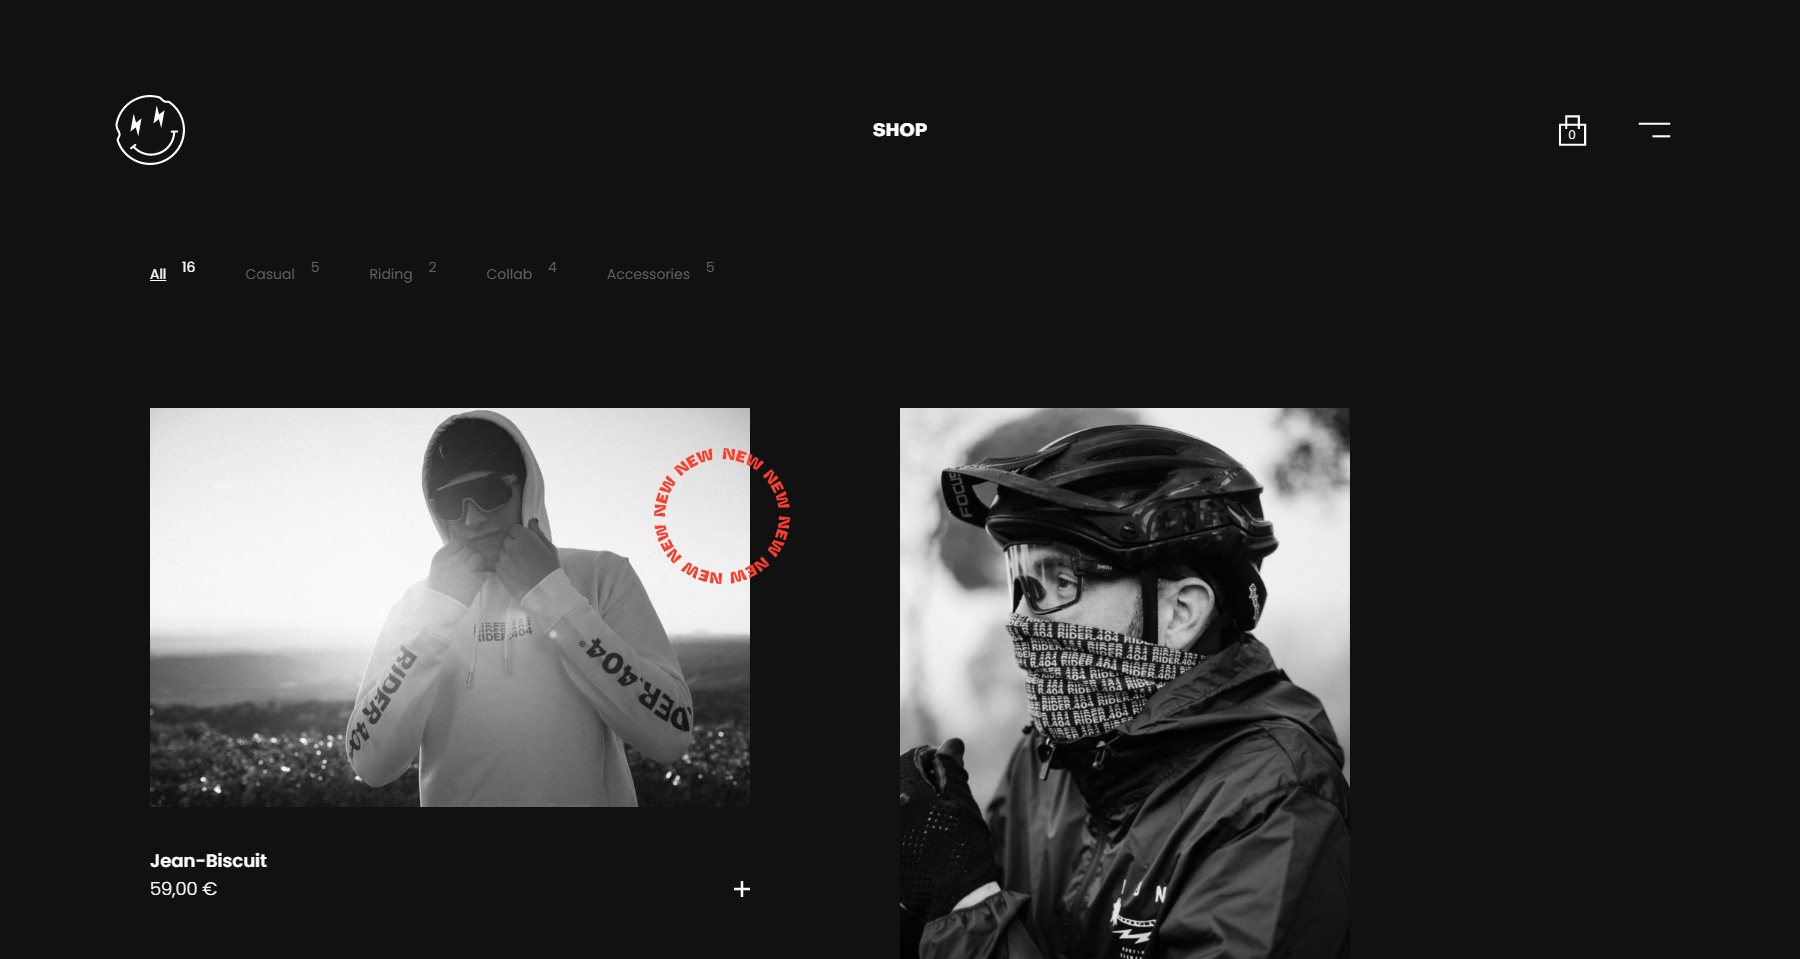 Rider404 - Website of the Day